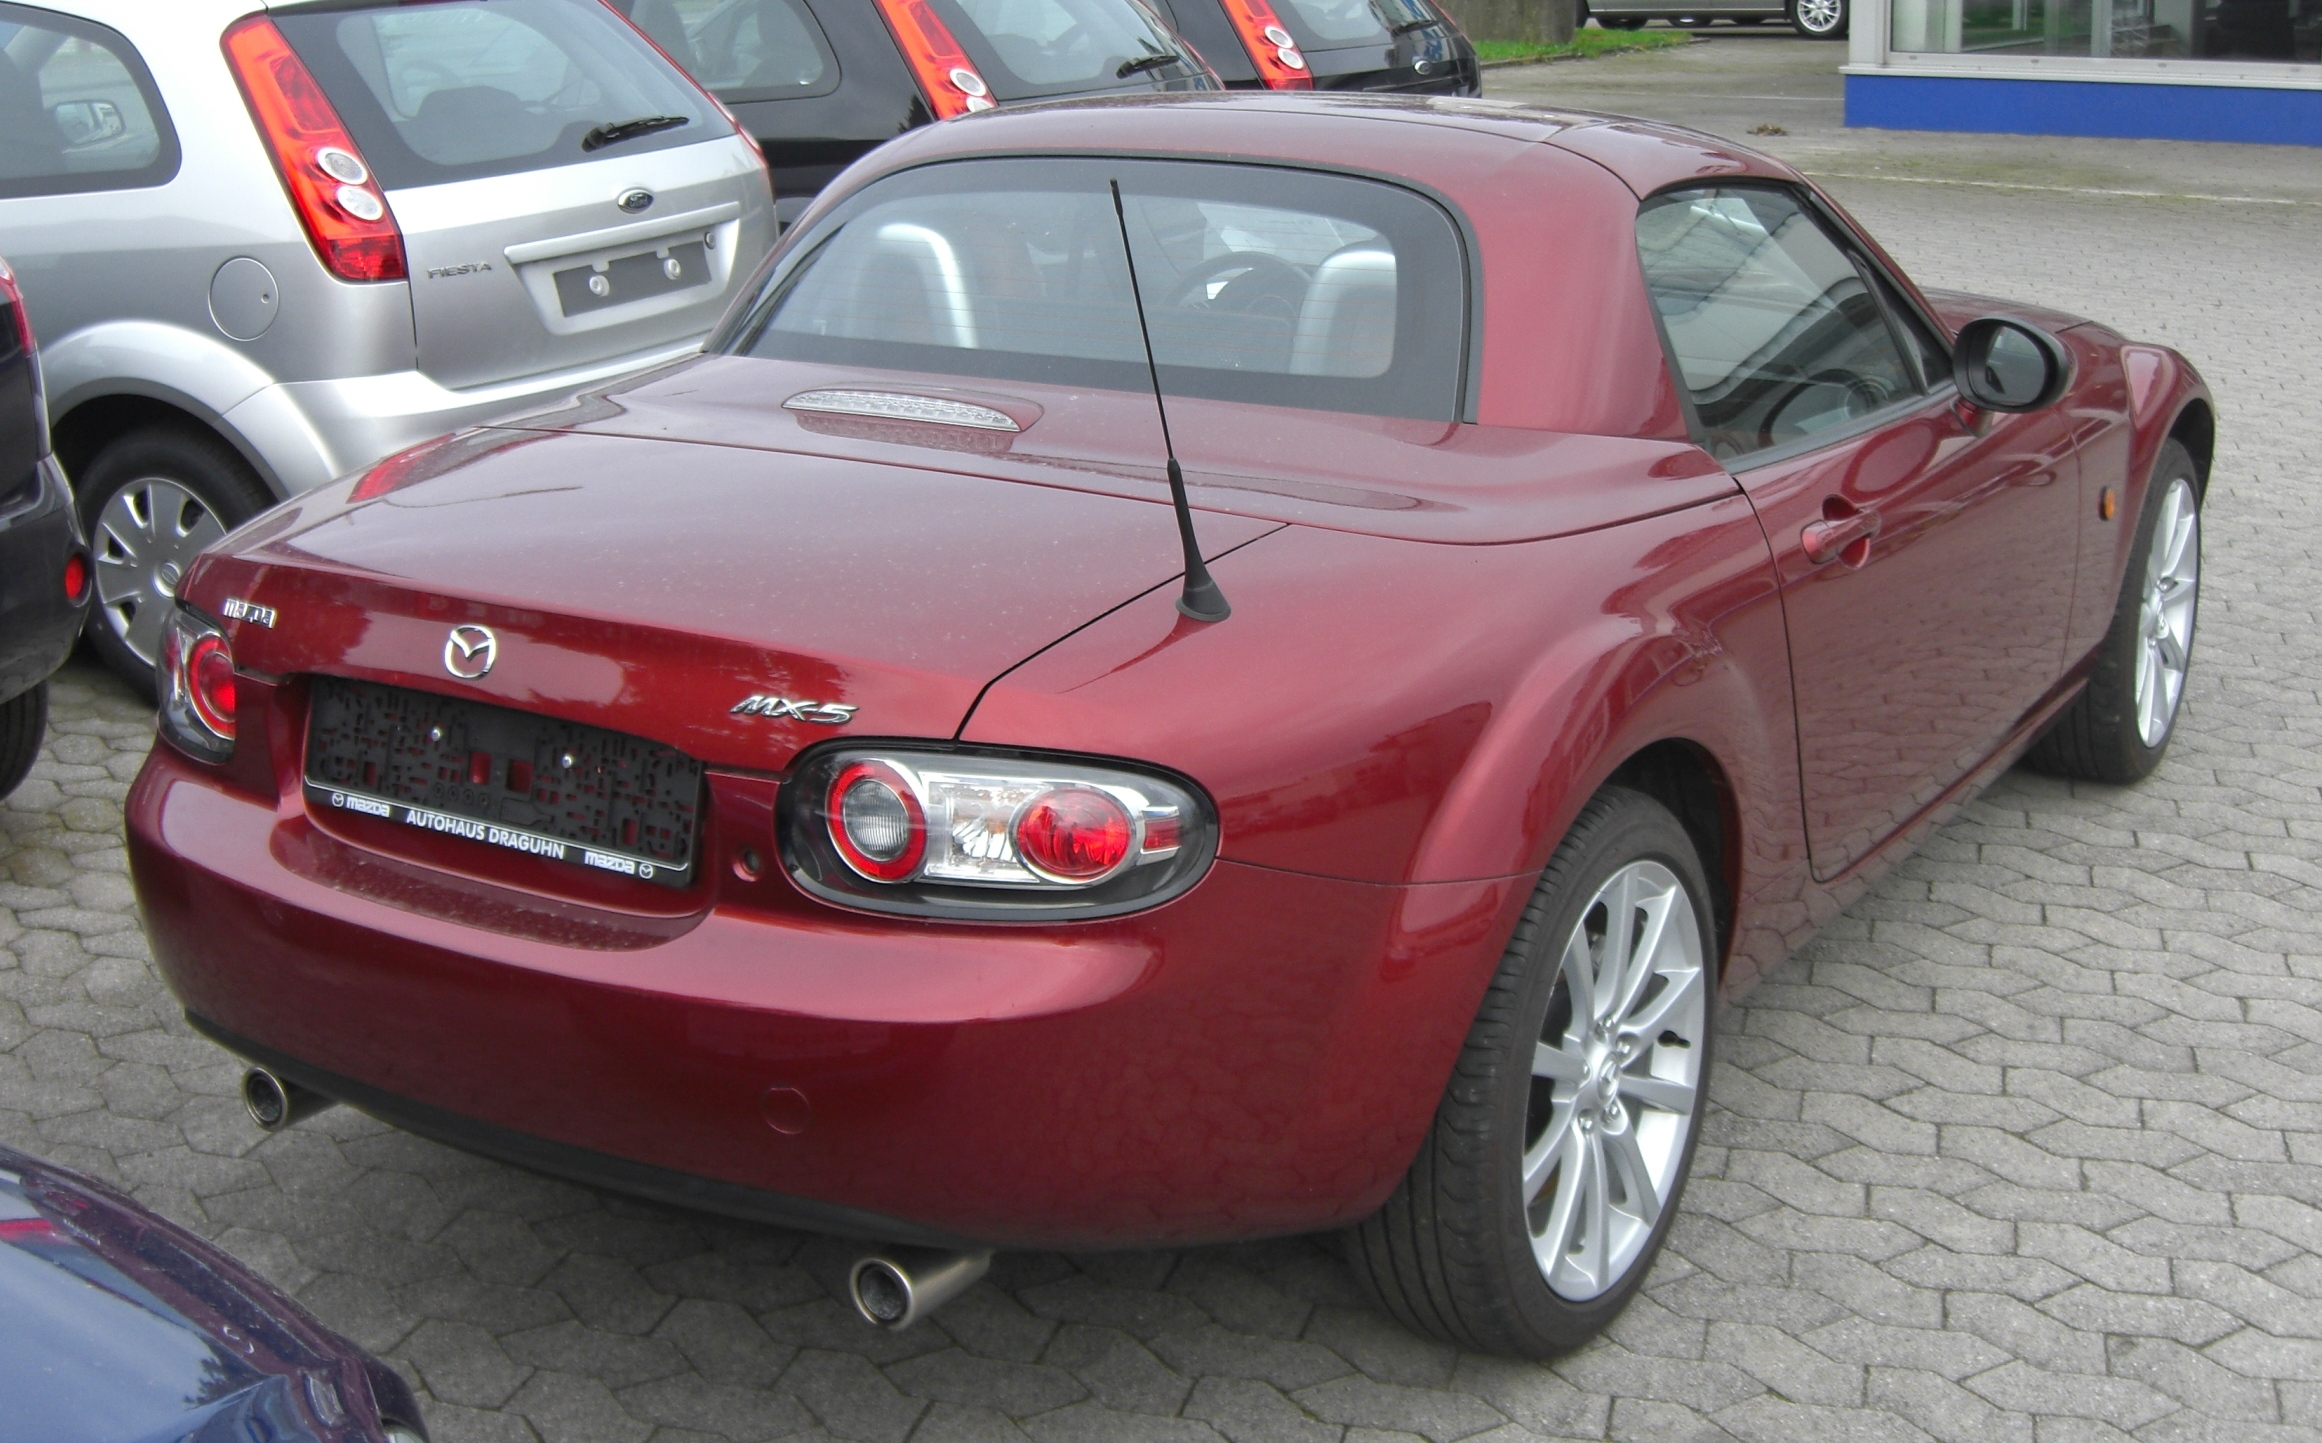 Build A Mazda >> File:Mazda MX-5 NC rear.JPG - Wikimedia Commons